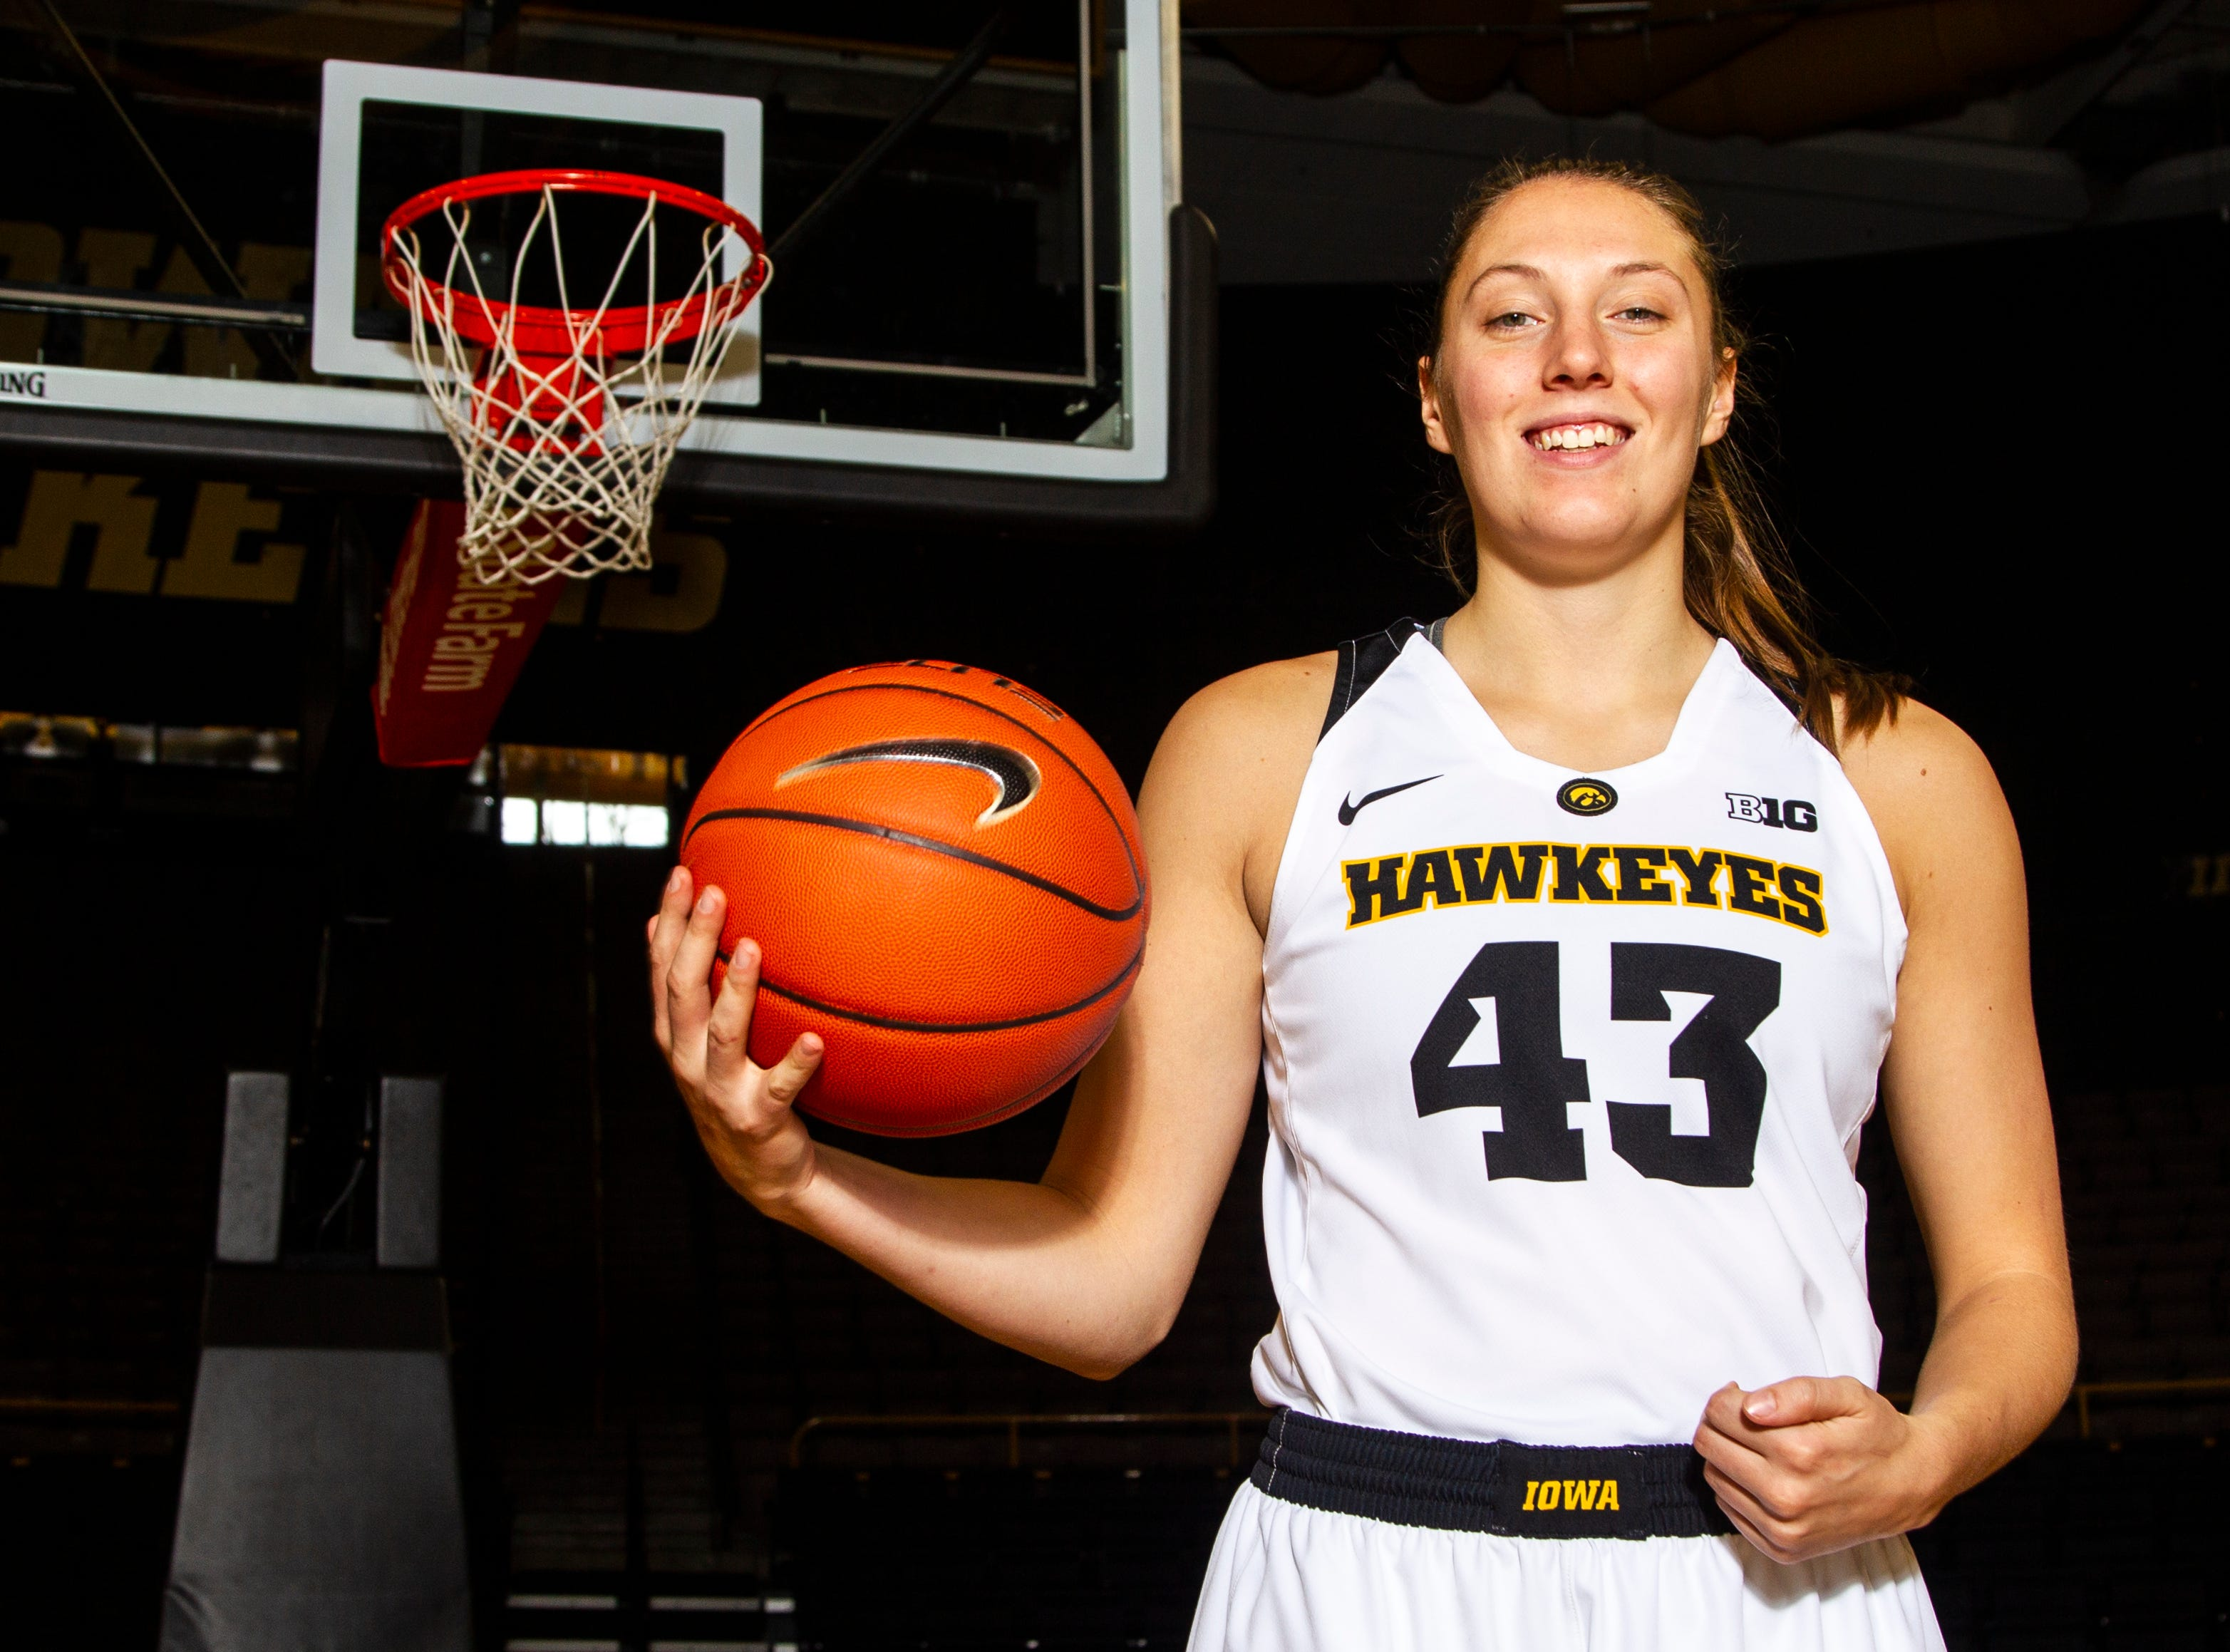 Iowa forward Amanda Ollinger (43) poses for a portrait during Hawkeye women's basketball media day on Wednesday, Oct. 31, 2018, at Carver-Hawkeye Arena in Iowa City.